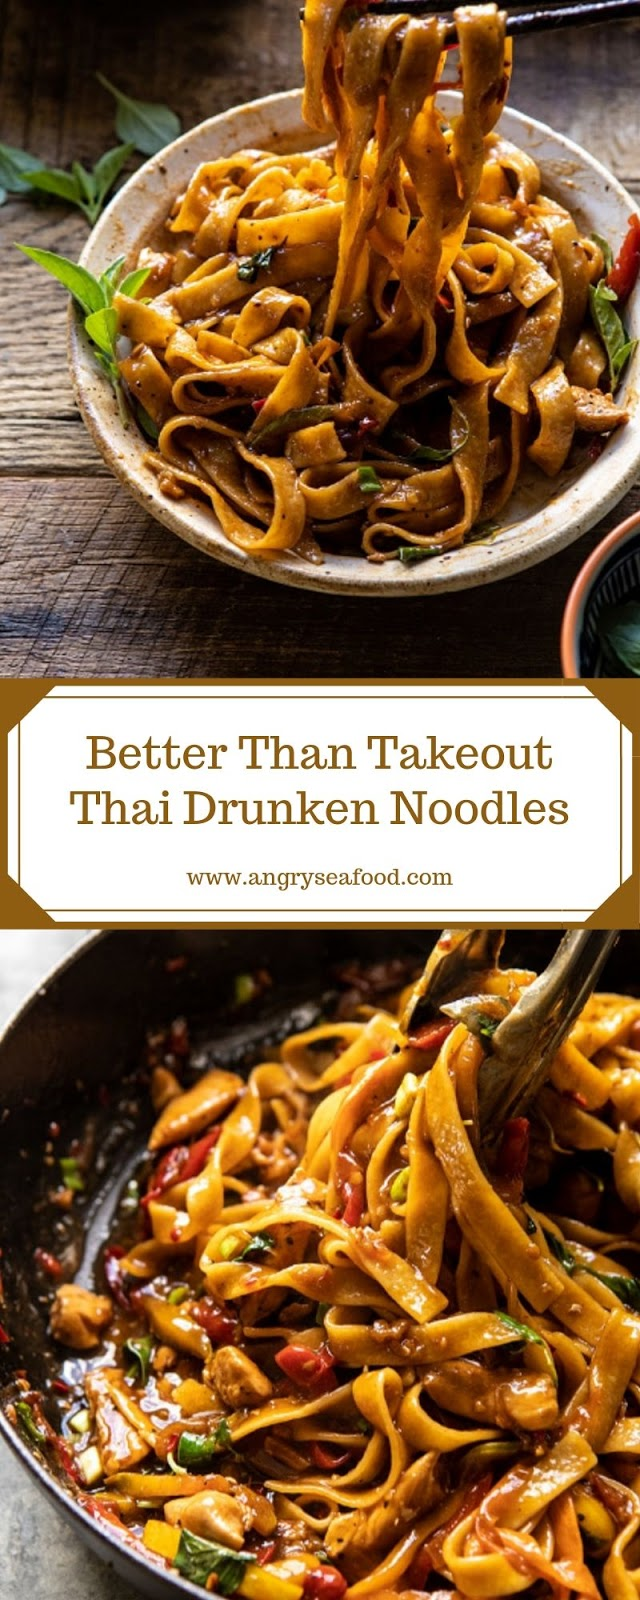 Better Than Takeout Thai Drunken Noodles